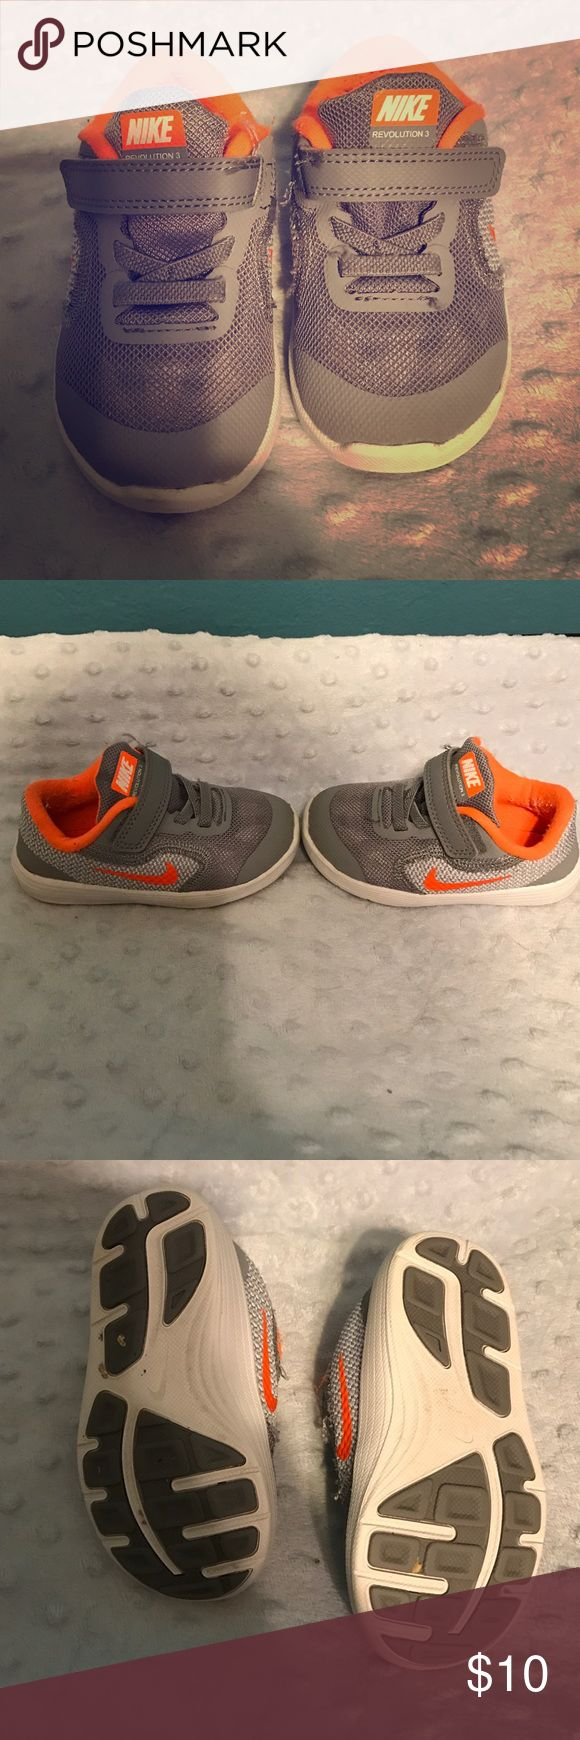 Nike Revolution Toddler size 6 sneakers! Show some signs of wear but still in good condition. Very comfortable sneakers for little boys who like to run around! Nike Shoes Sneakers